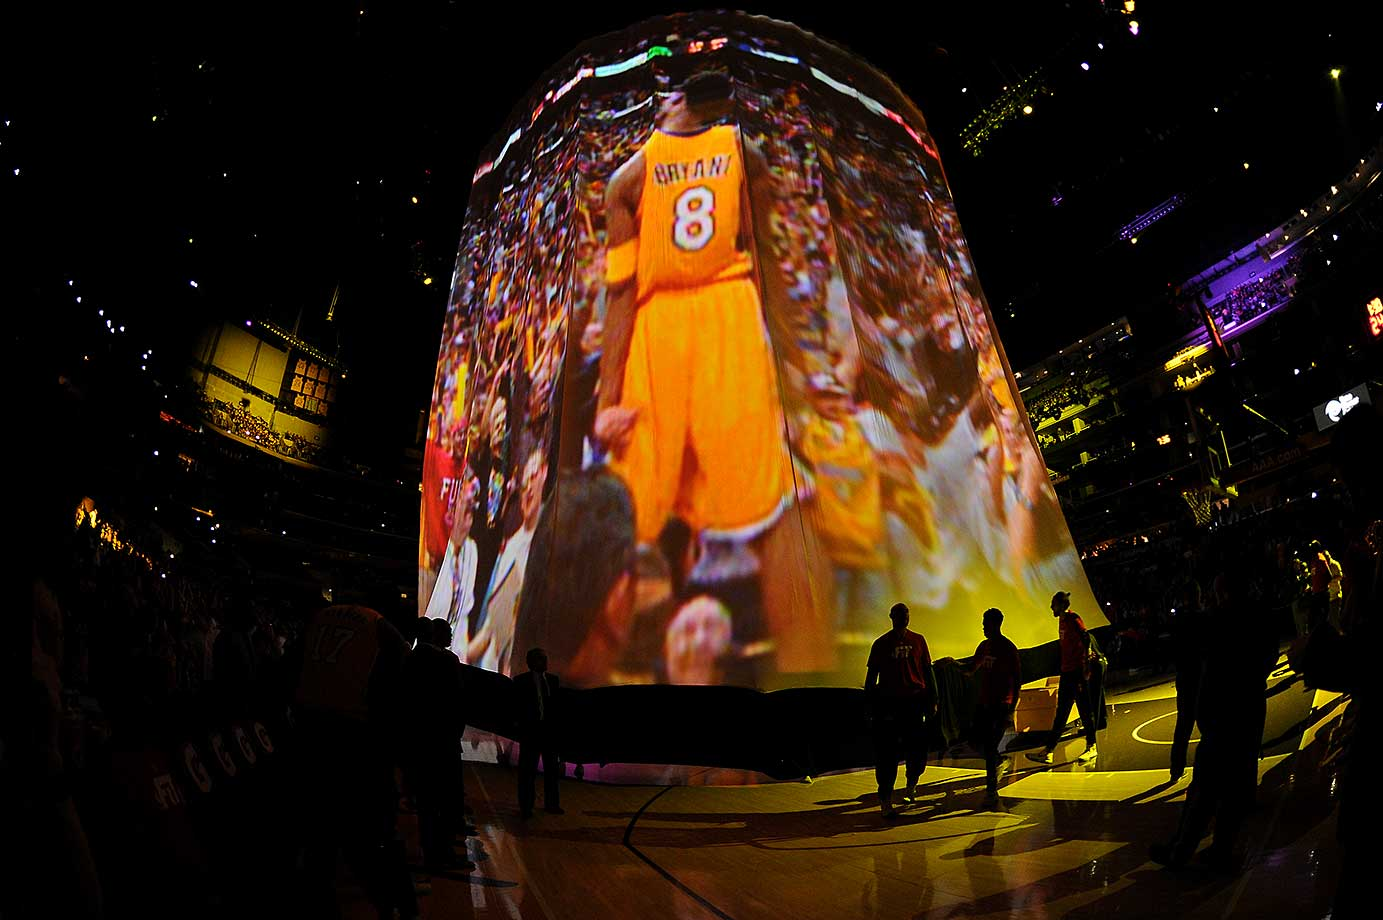 The Los Angeles Lakers are introduced before the game against the Dallas Mavericks in Los Angeles